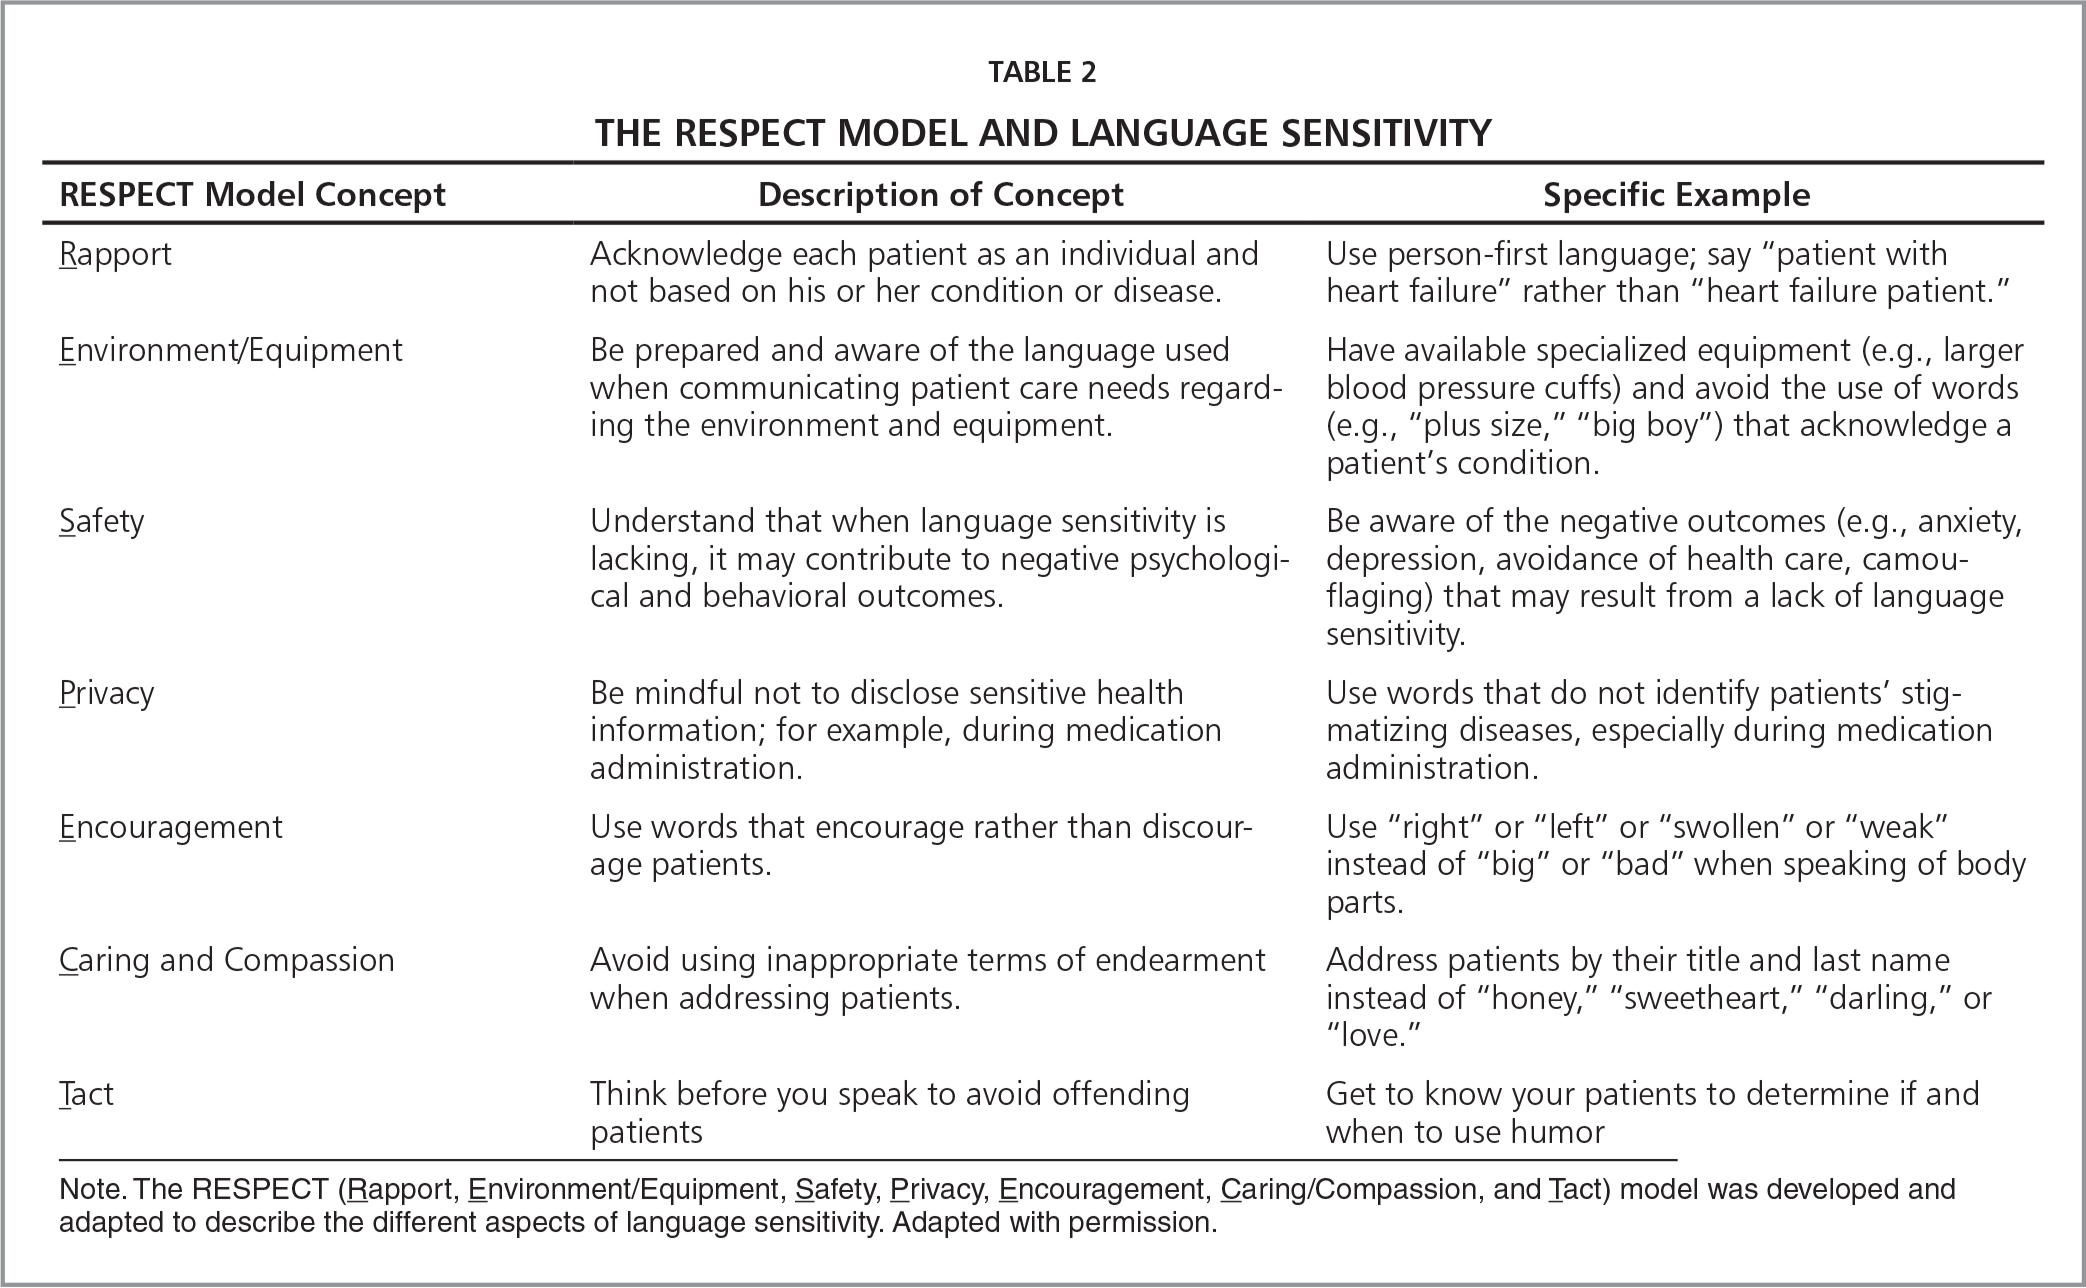 The Respect Model and Language Sensitivity